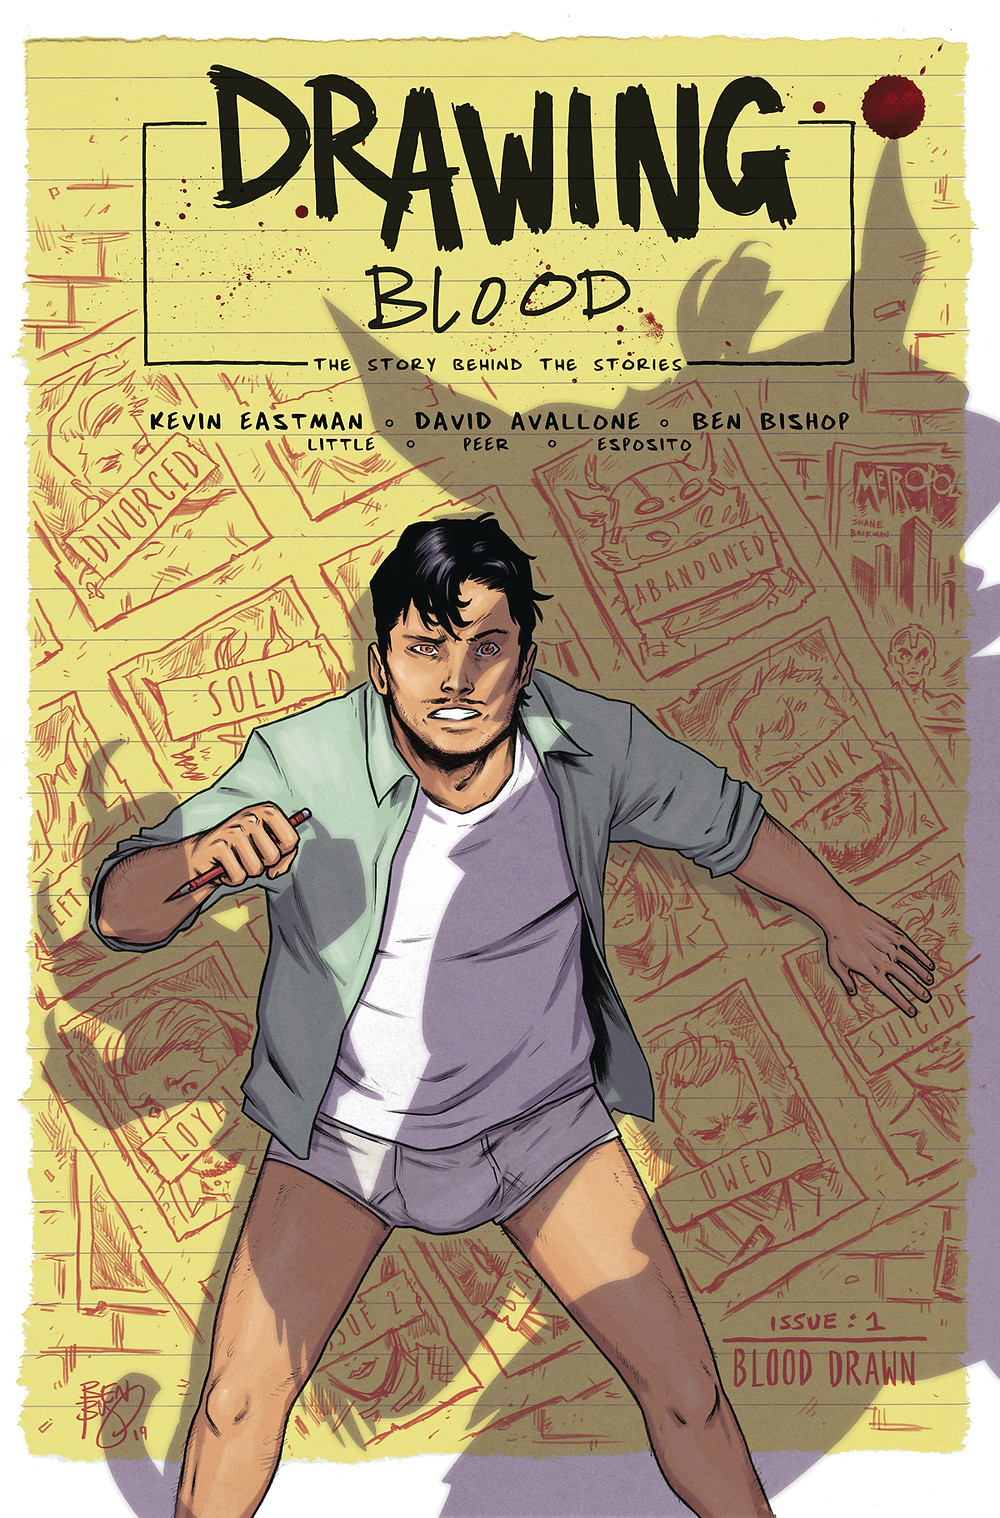 Drawing Blood, issue #1, cover, self-published, Eastman/Avallone/Bishop